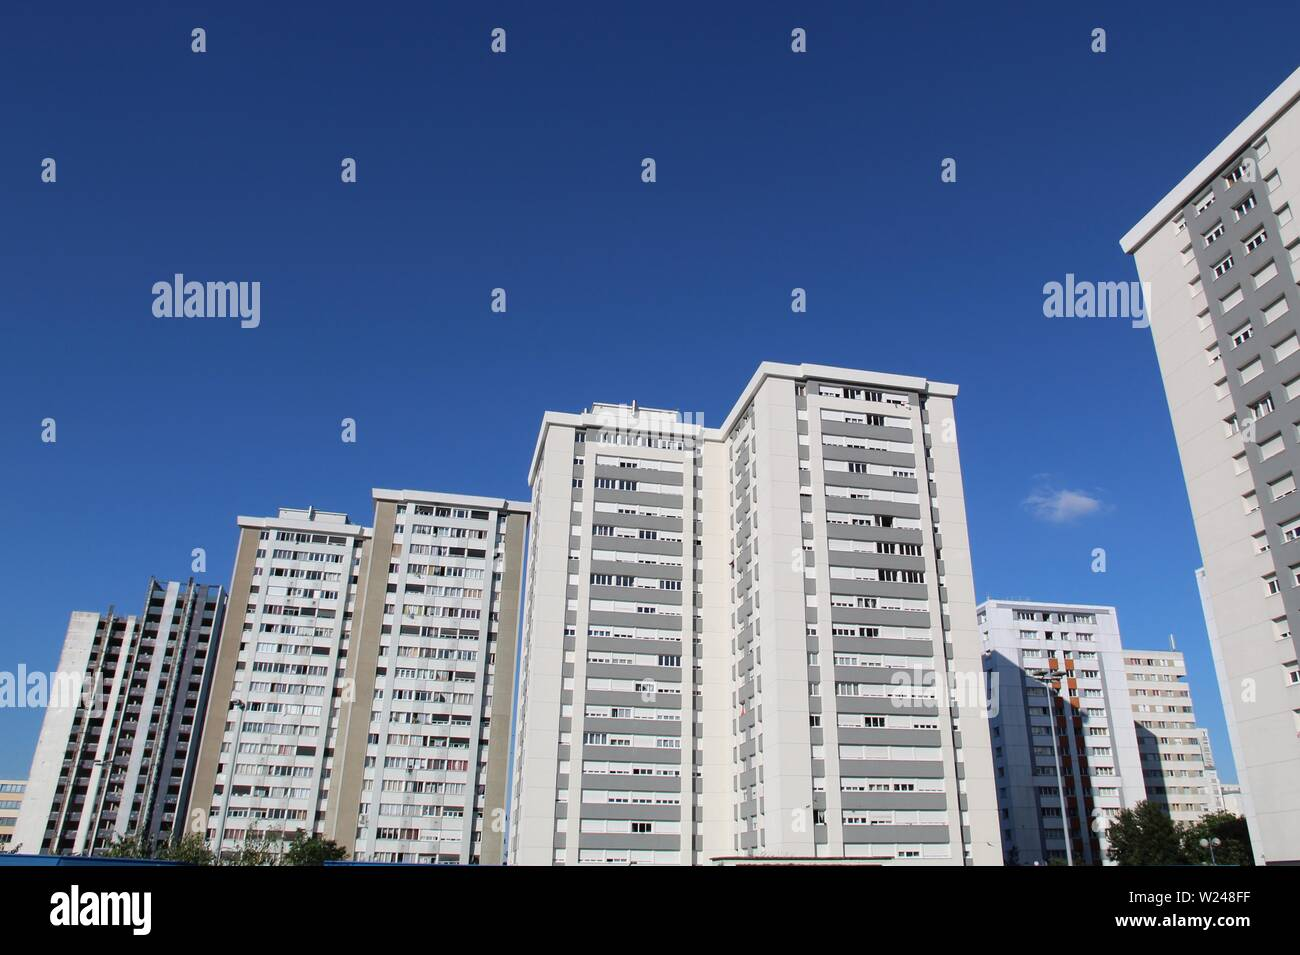 High rise flats - Stock Image